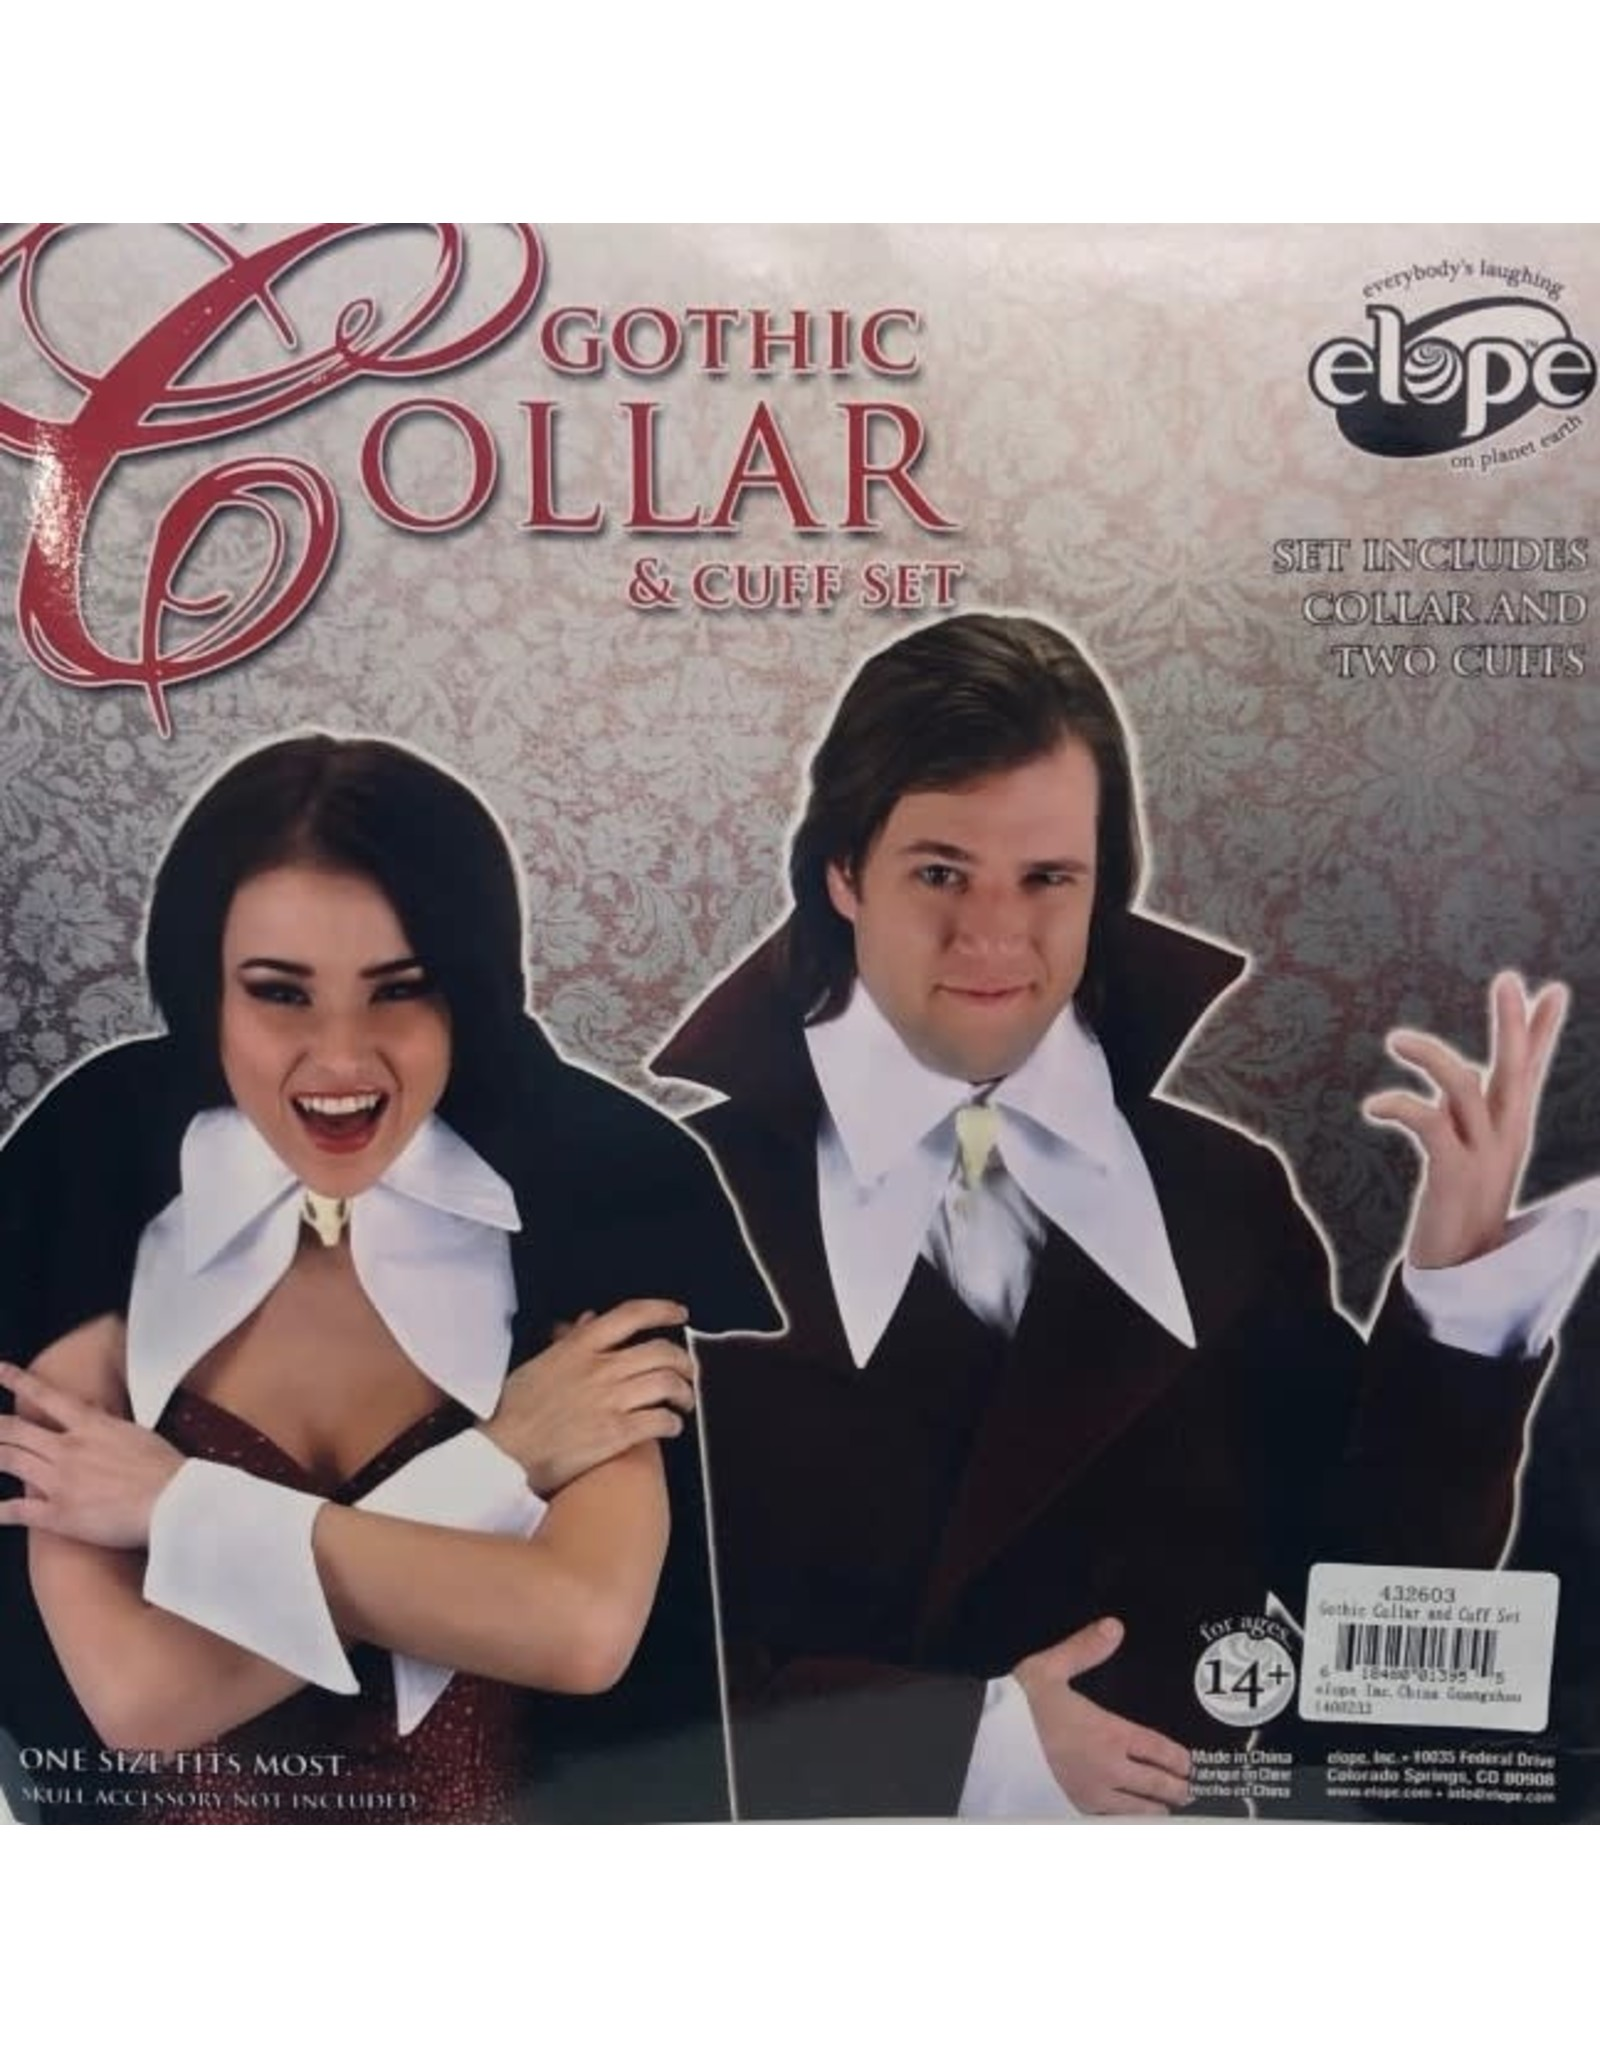 Elope Gothic Collar and Cuff Set